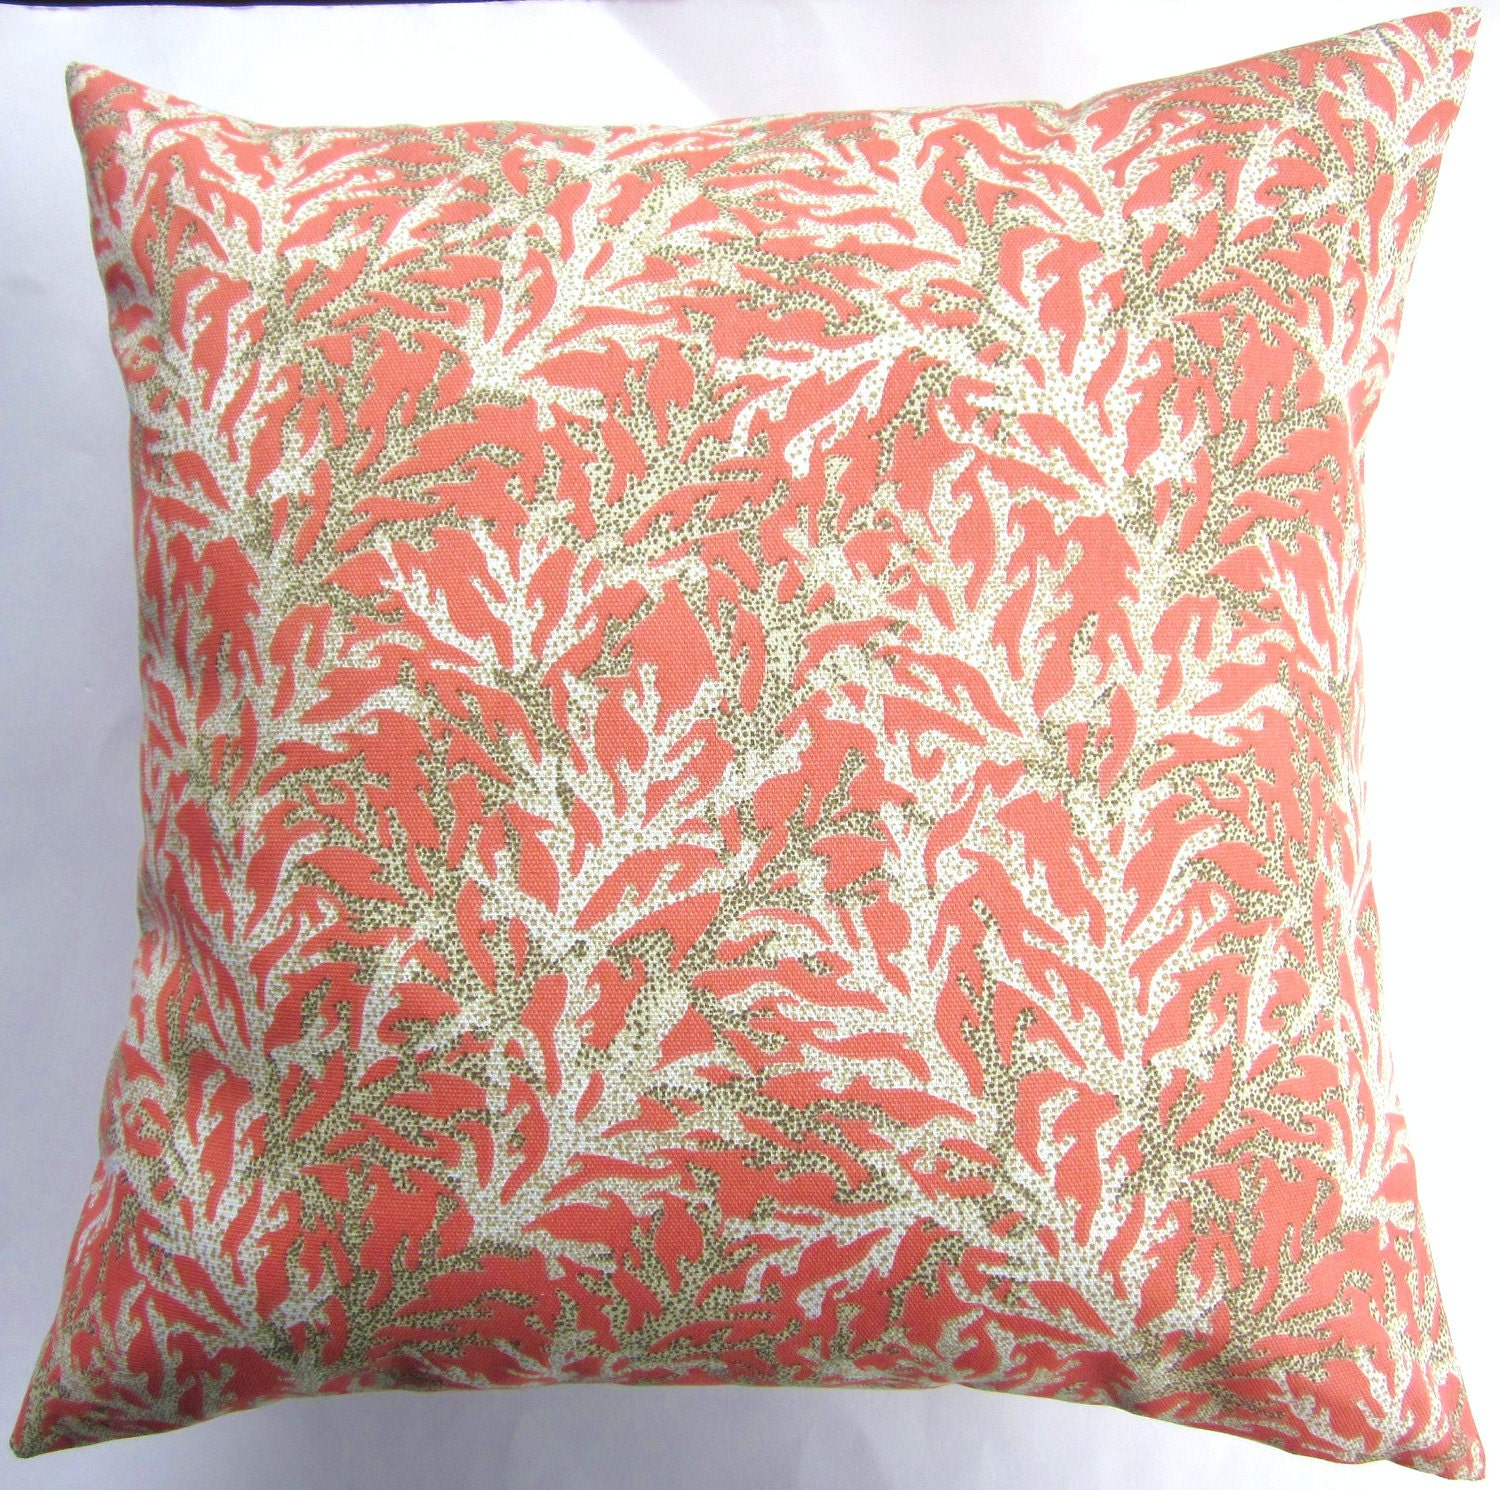 Throw Pillows Coral : Coral Throw Pillow Cover Coral Reef Indoor by sassypillows